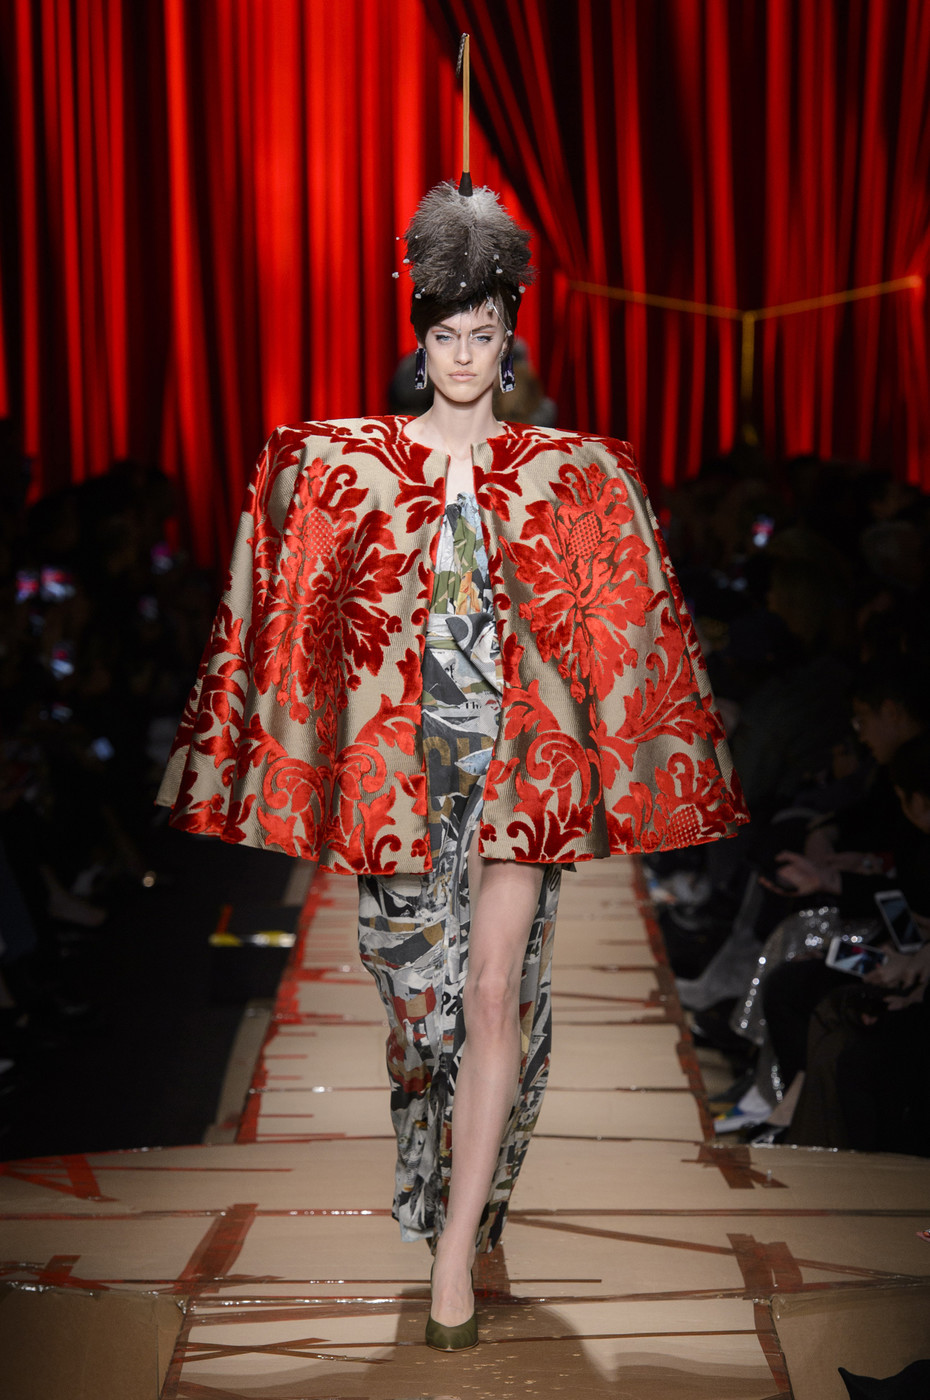 Moschino Jackie Kennedy Fall 2018 Runway Show - Moschino Fall Moschino milano fashion week